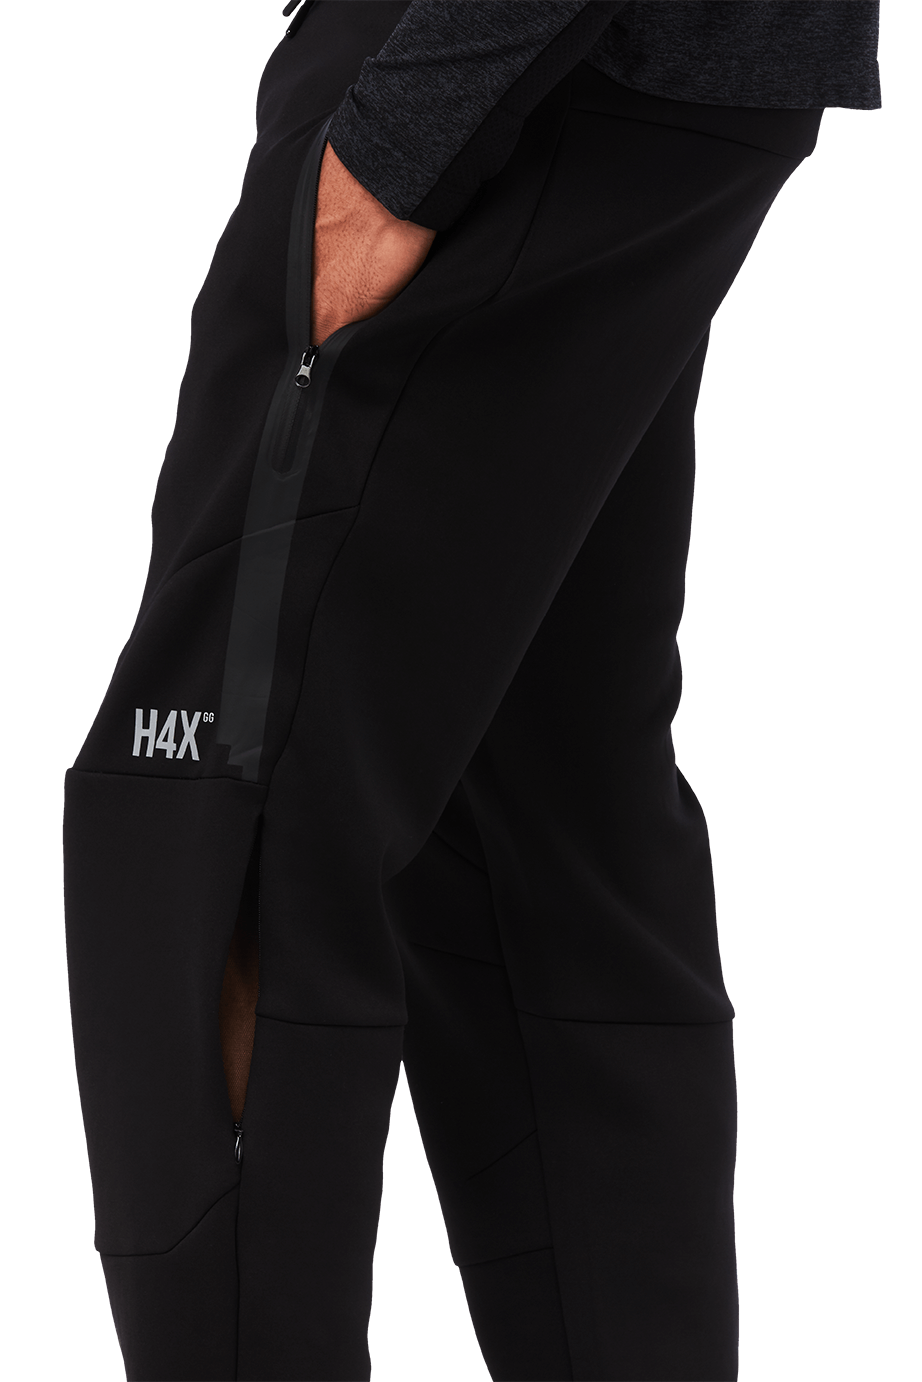 H4X - Performance Jogger